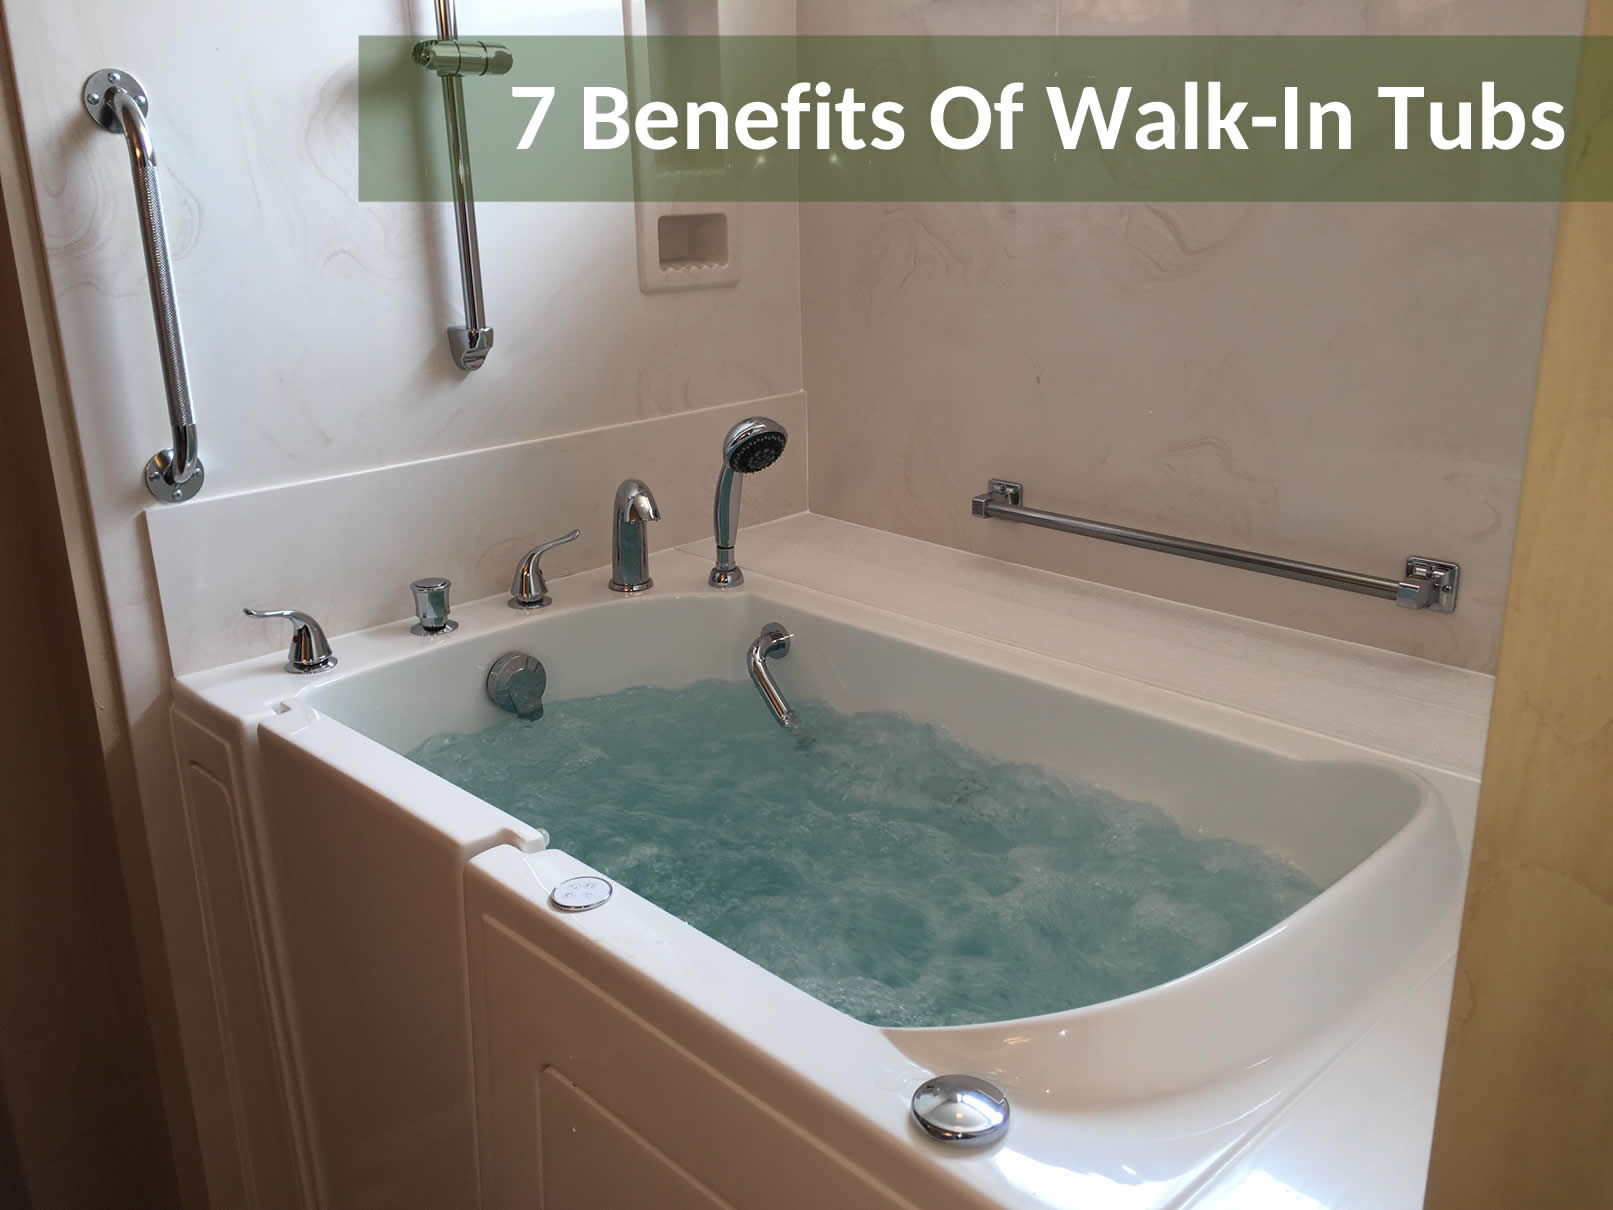 7 Benefits of Walk-In Tubs - Aging in Place